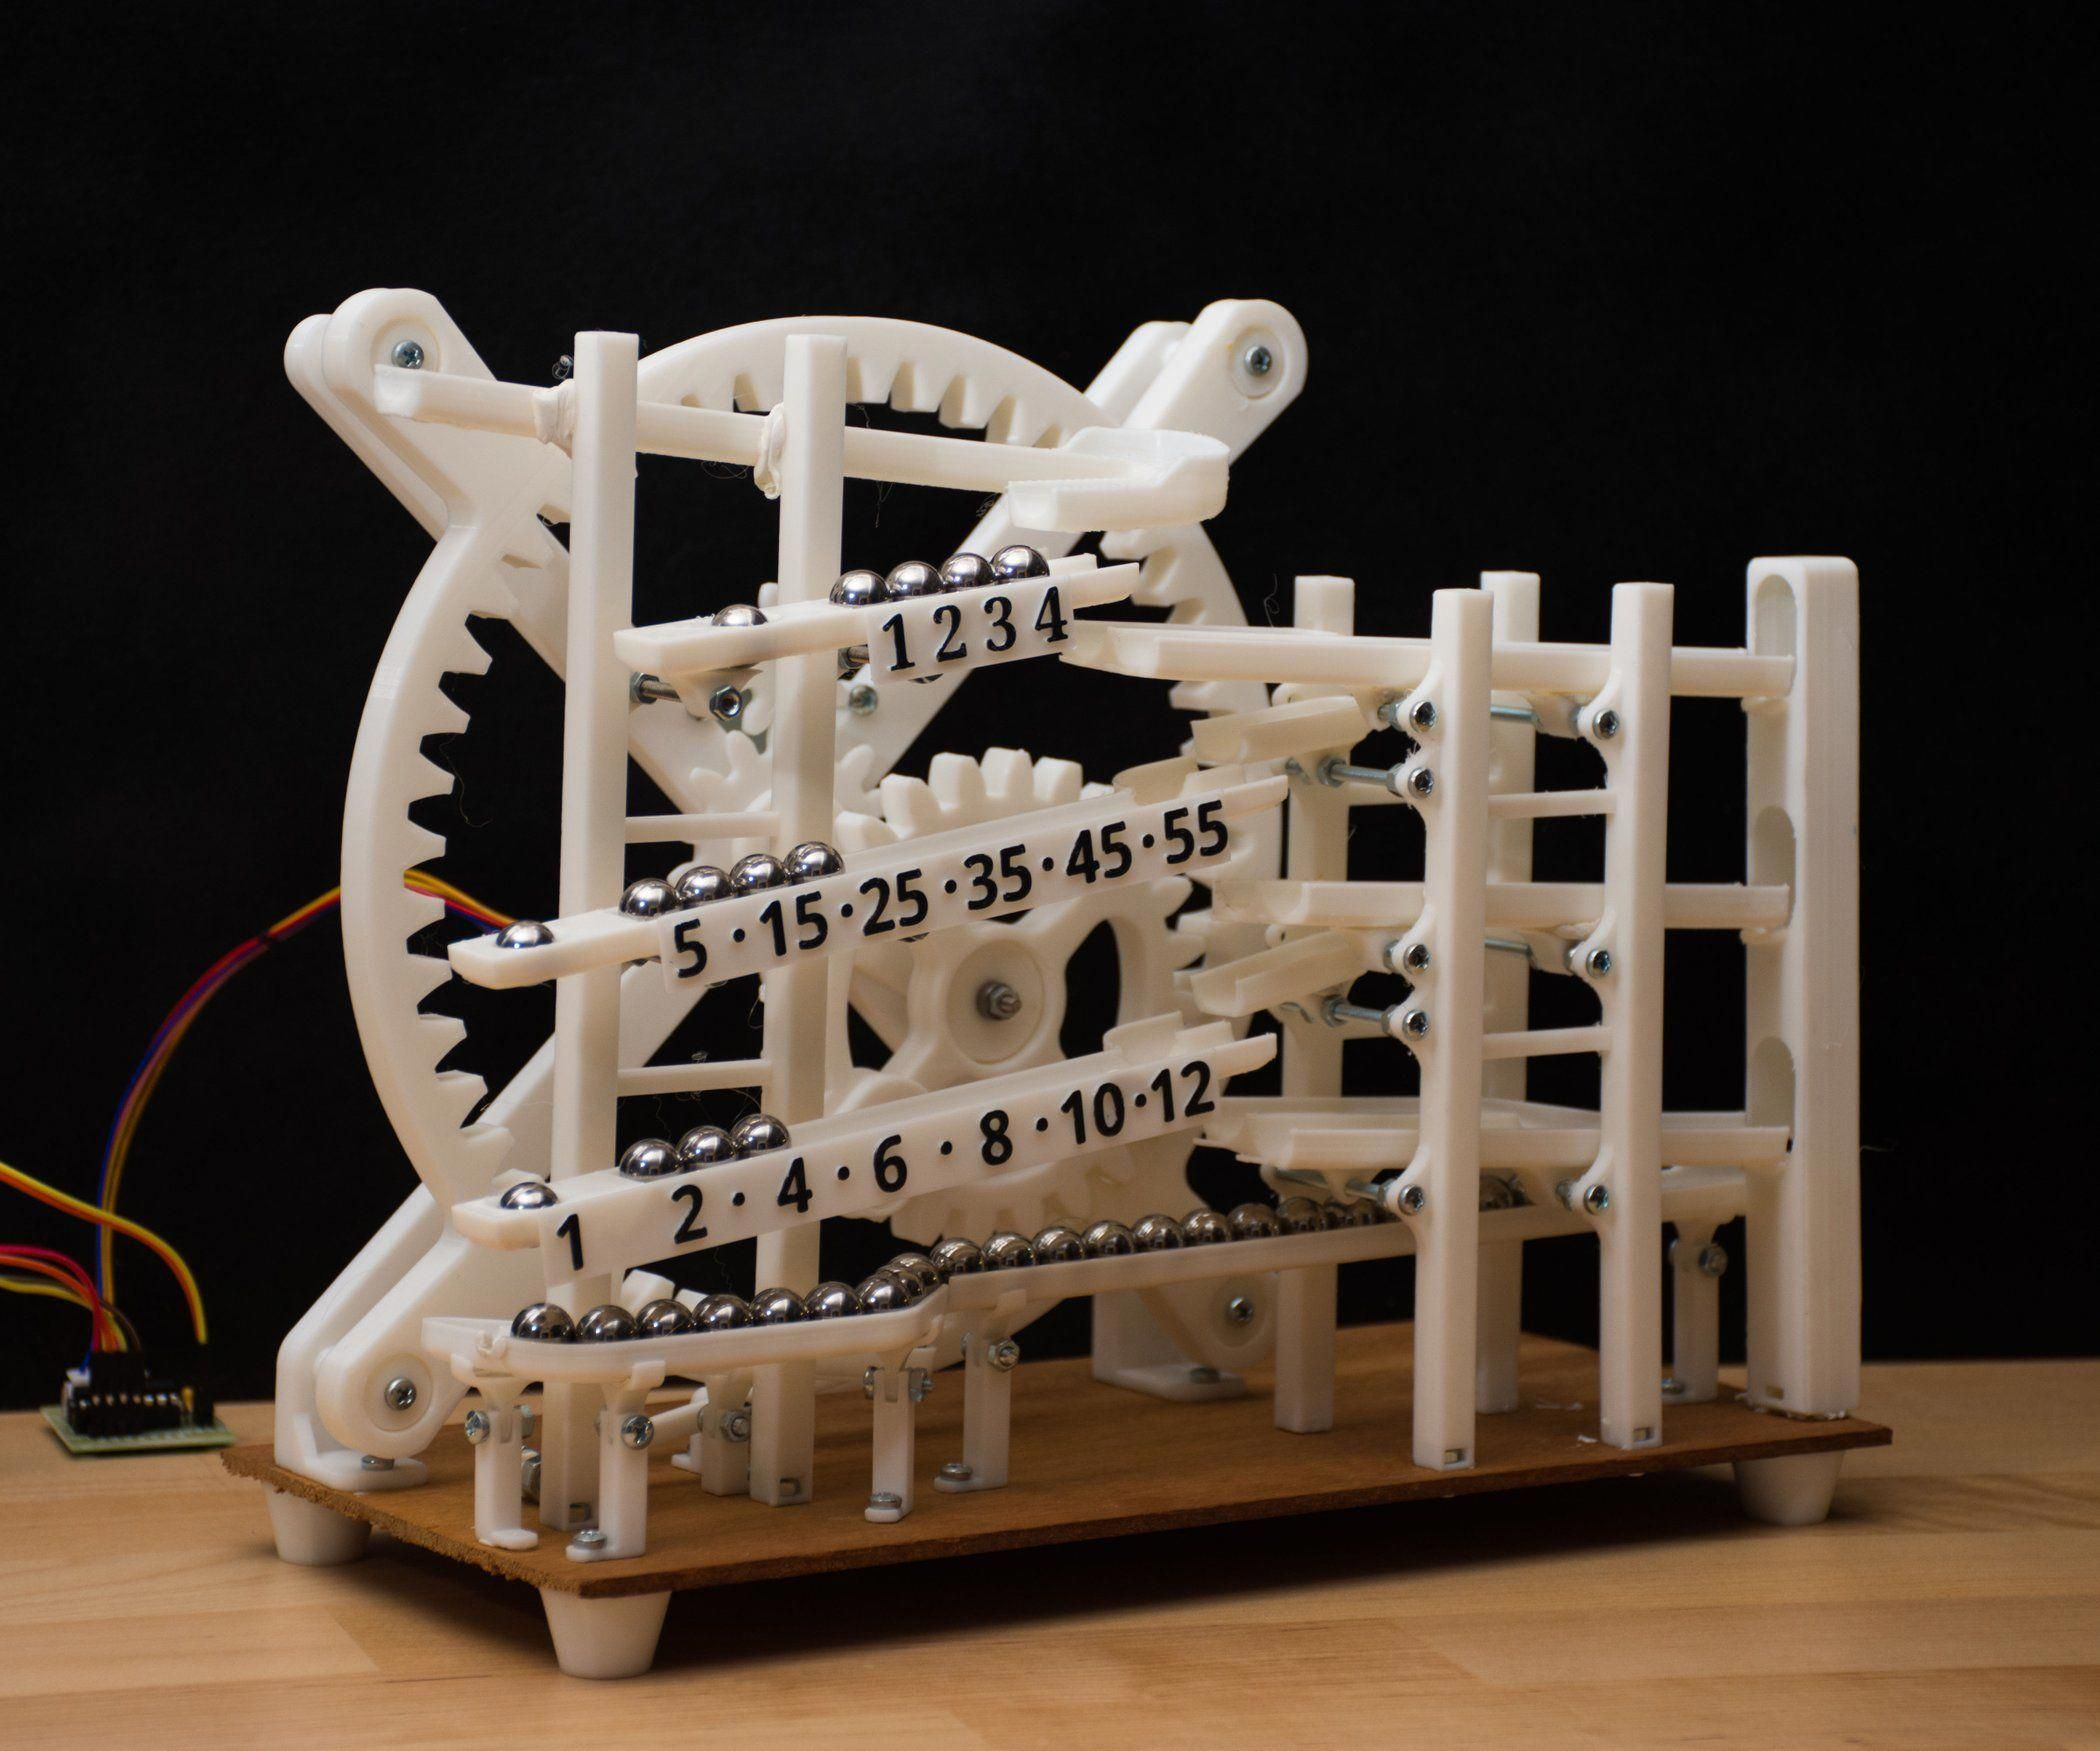 Marble Clock Is A 3d Printed Rolling Ball Clock That Tells The Time By The Location Of Marbles Balls It Consists Of 3 Ma Impresora 3d Impresion 3d La Creacion